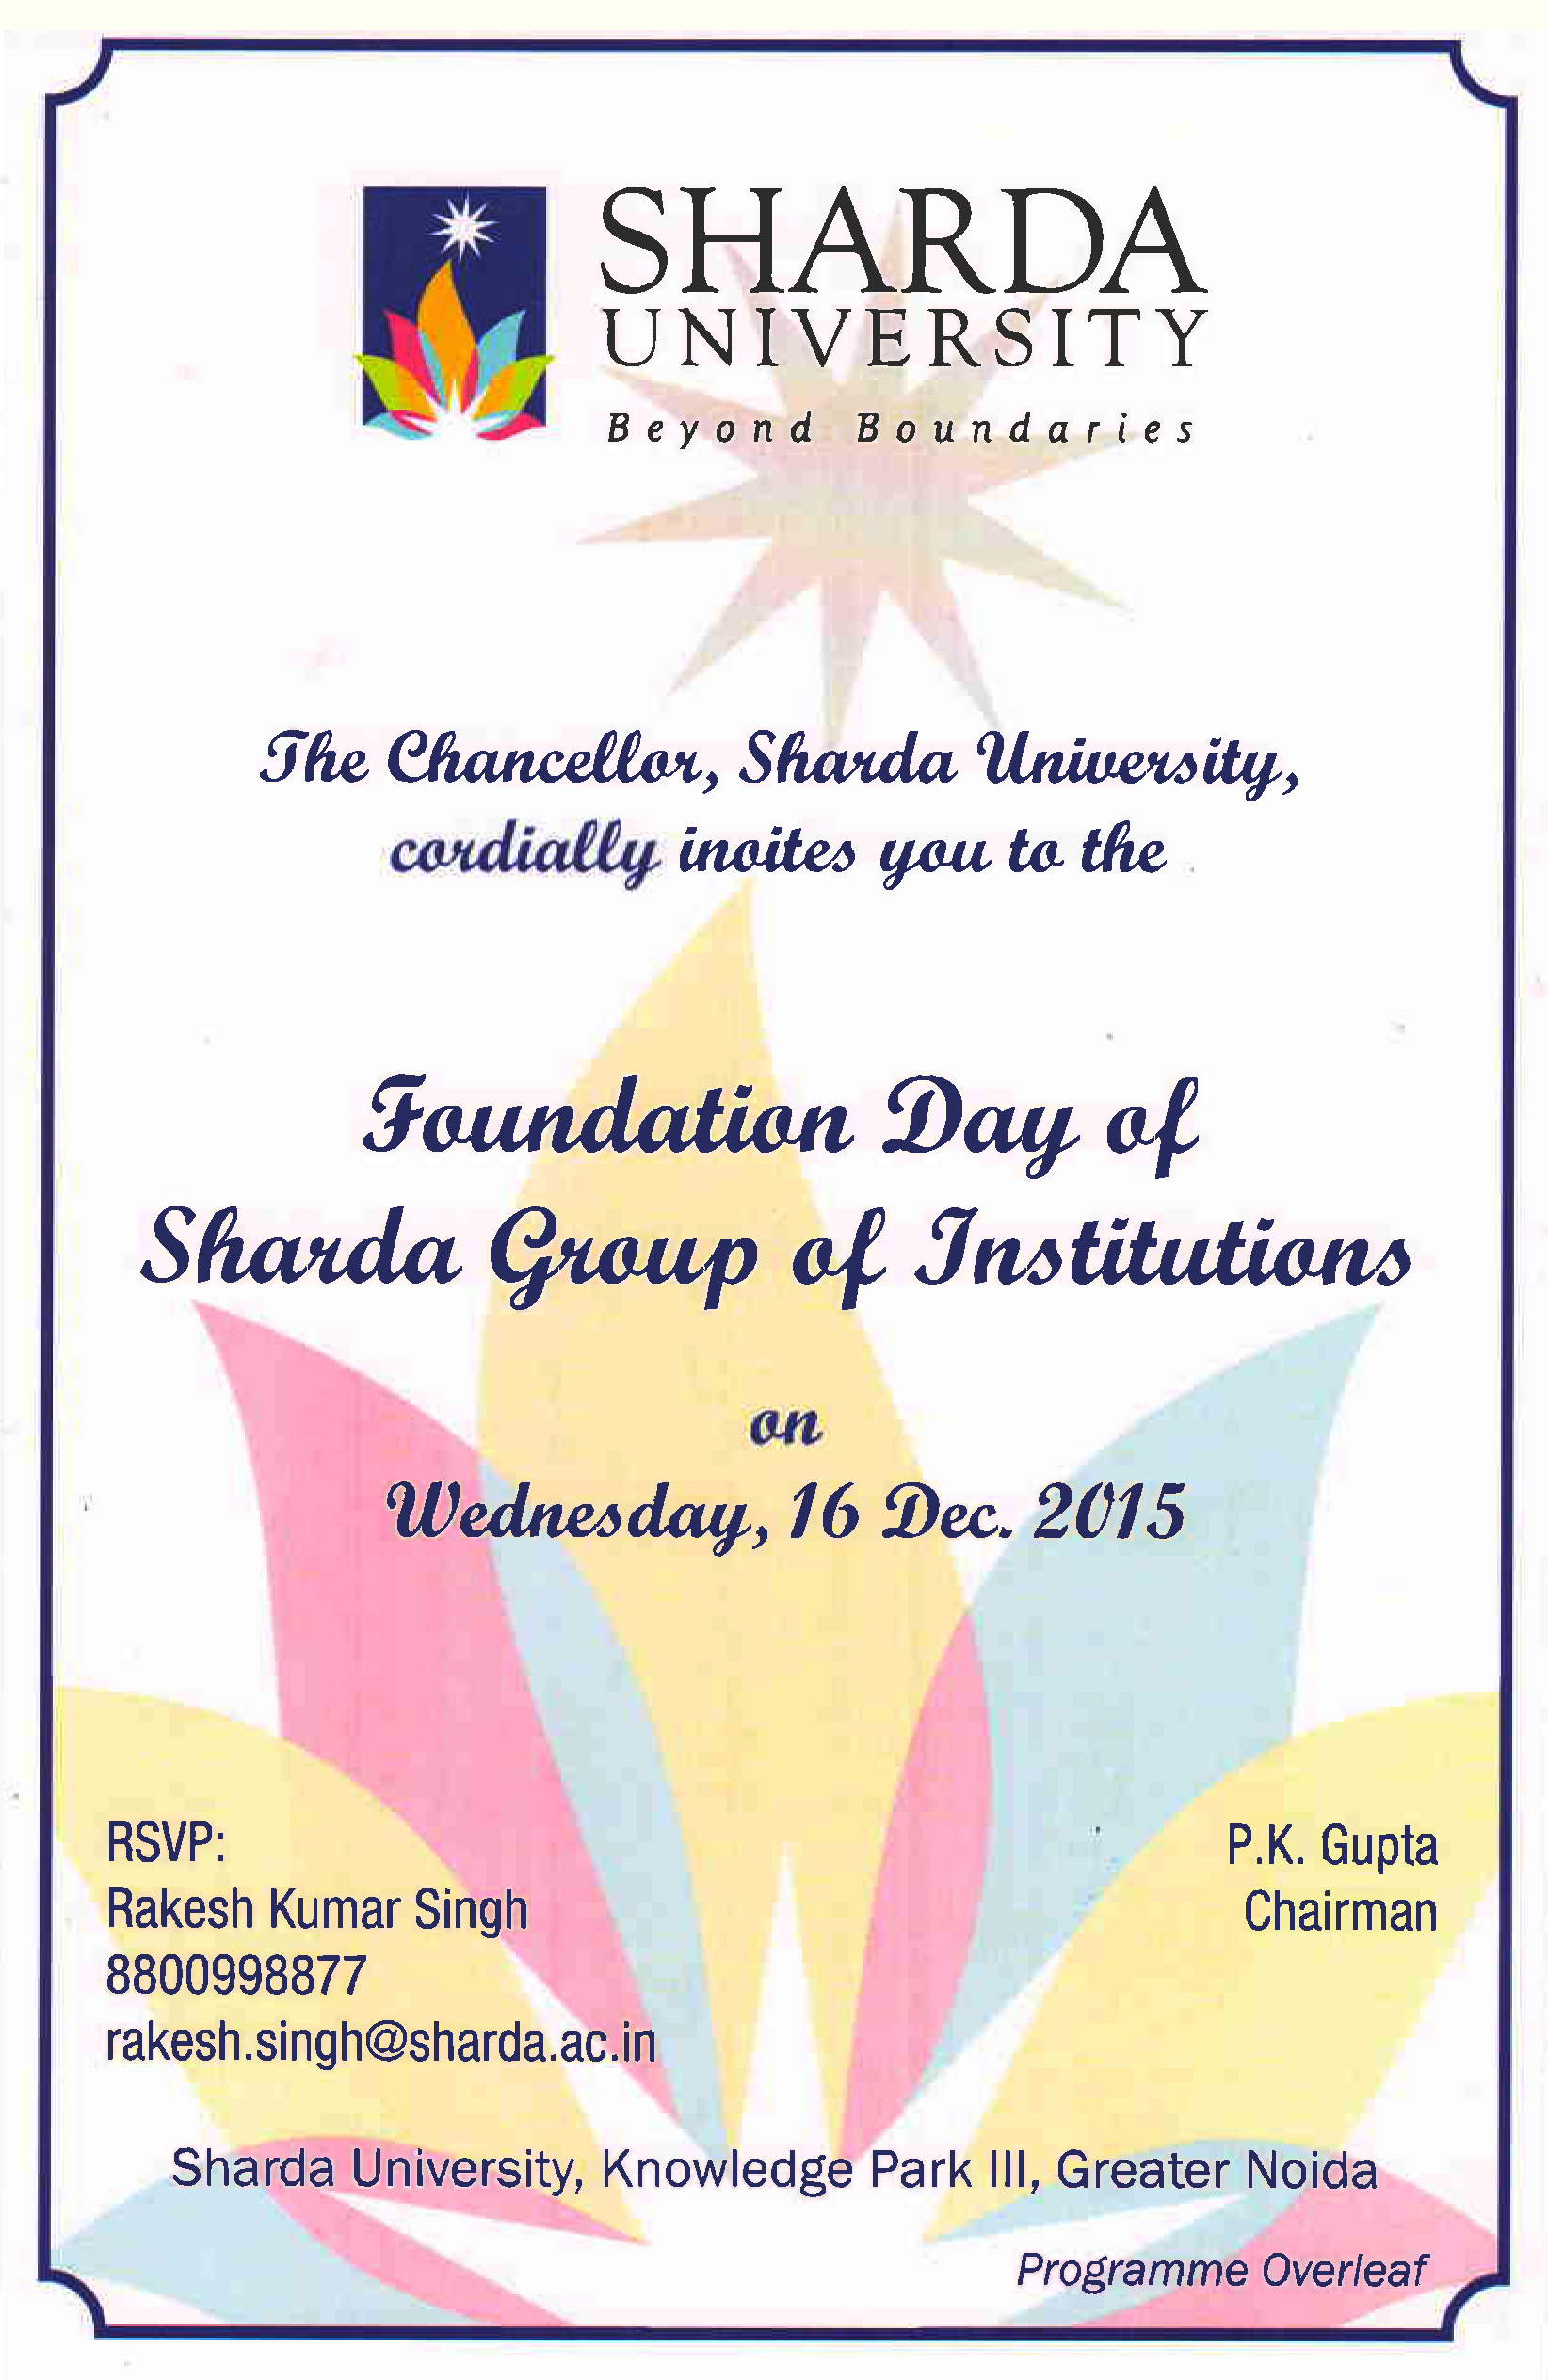 Invitation For Foundation Day Celebrations On 16th December 2015